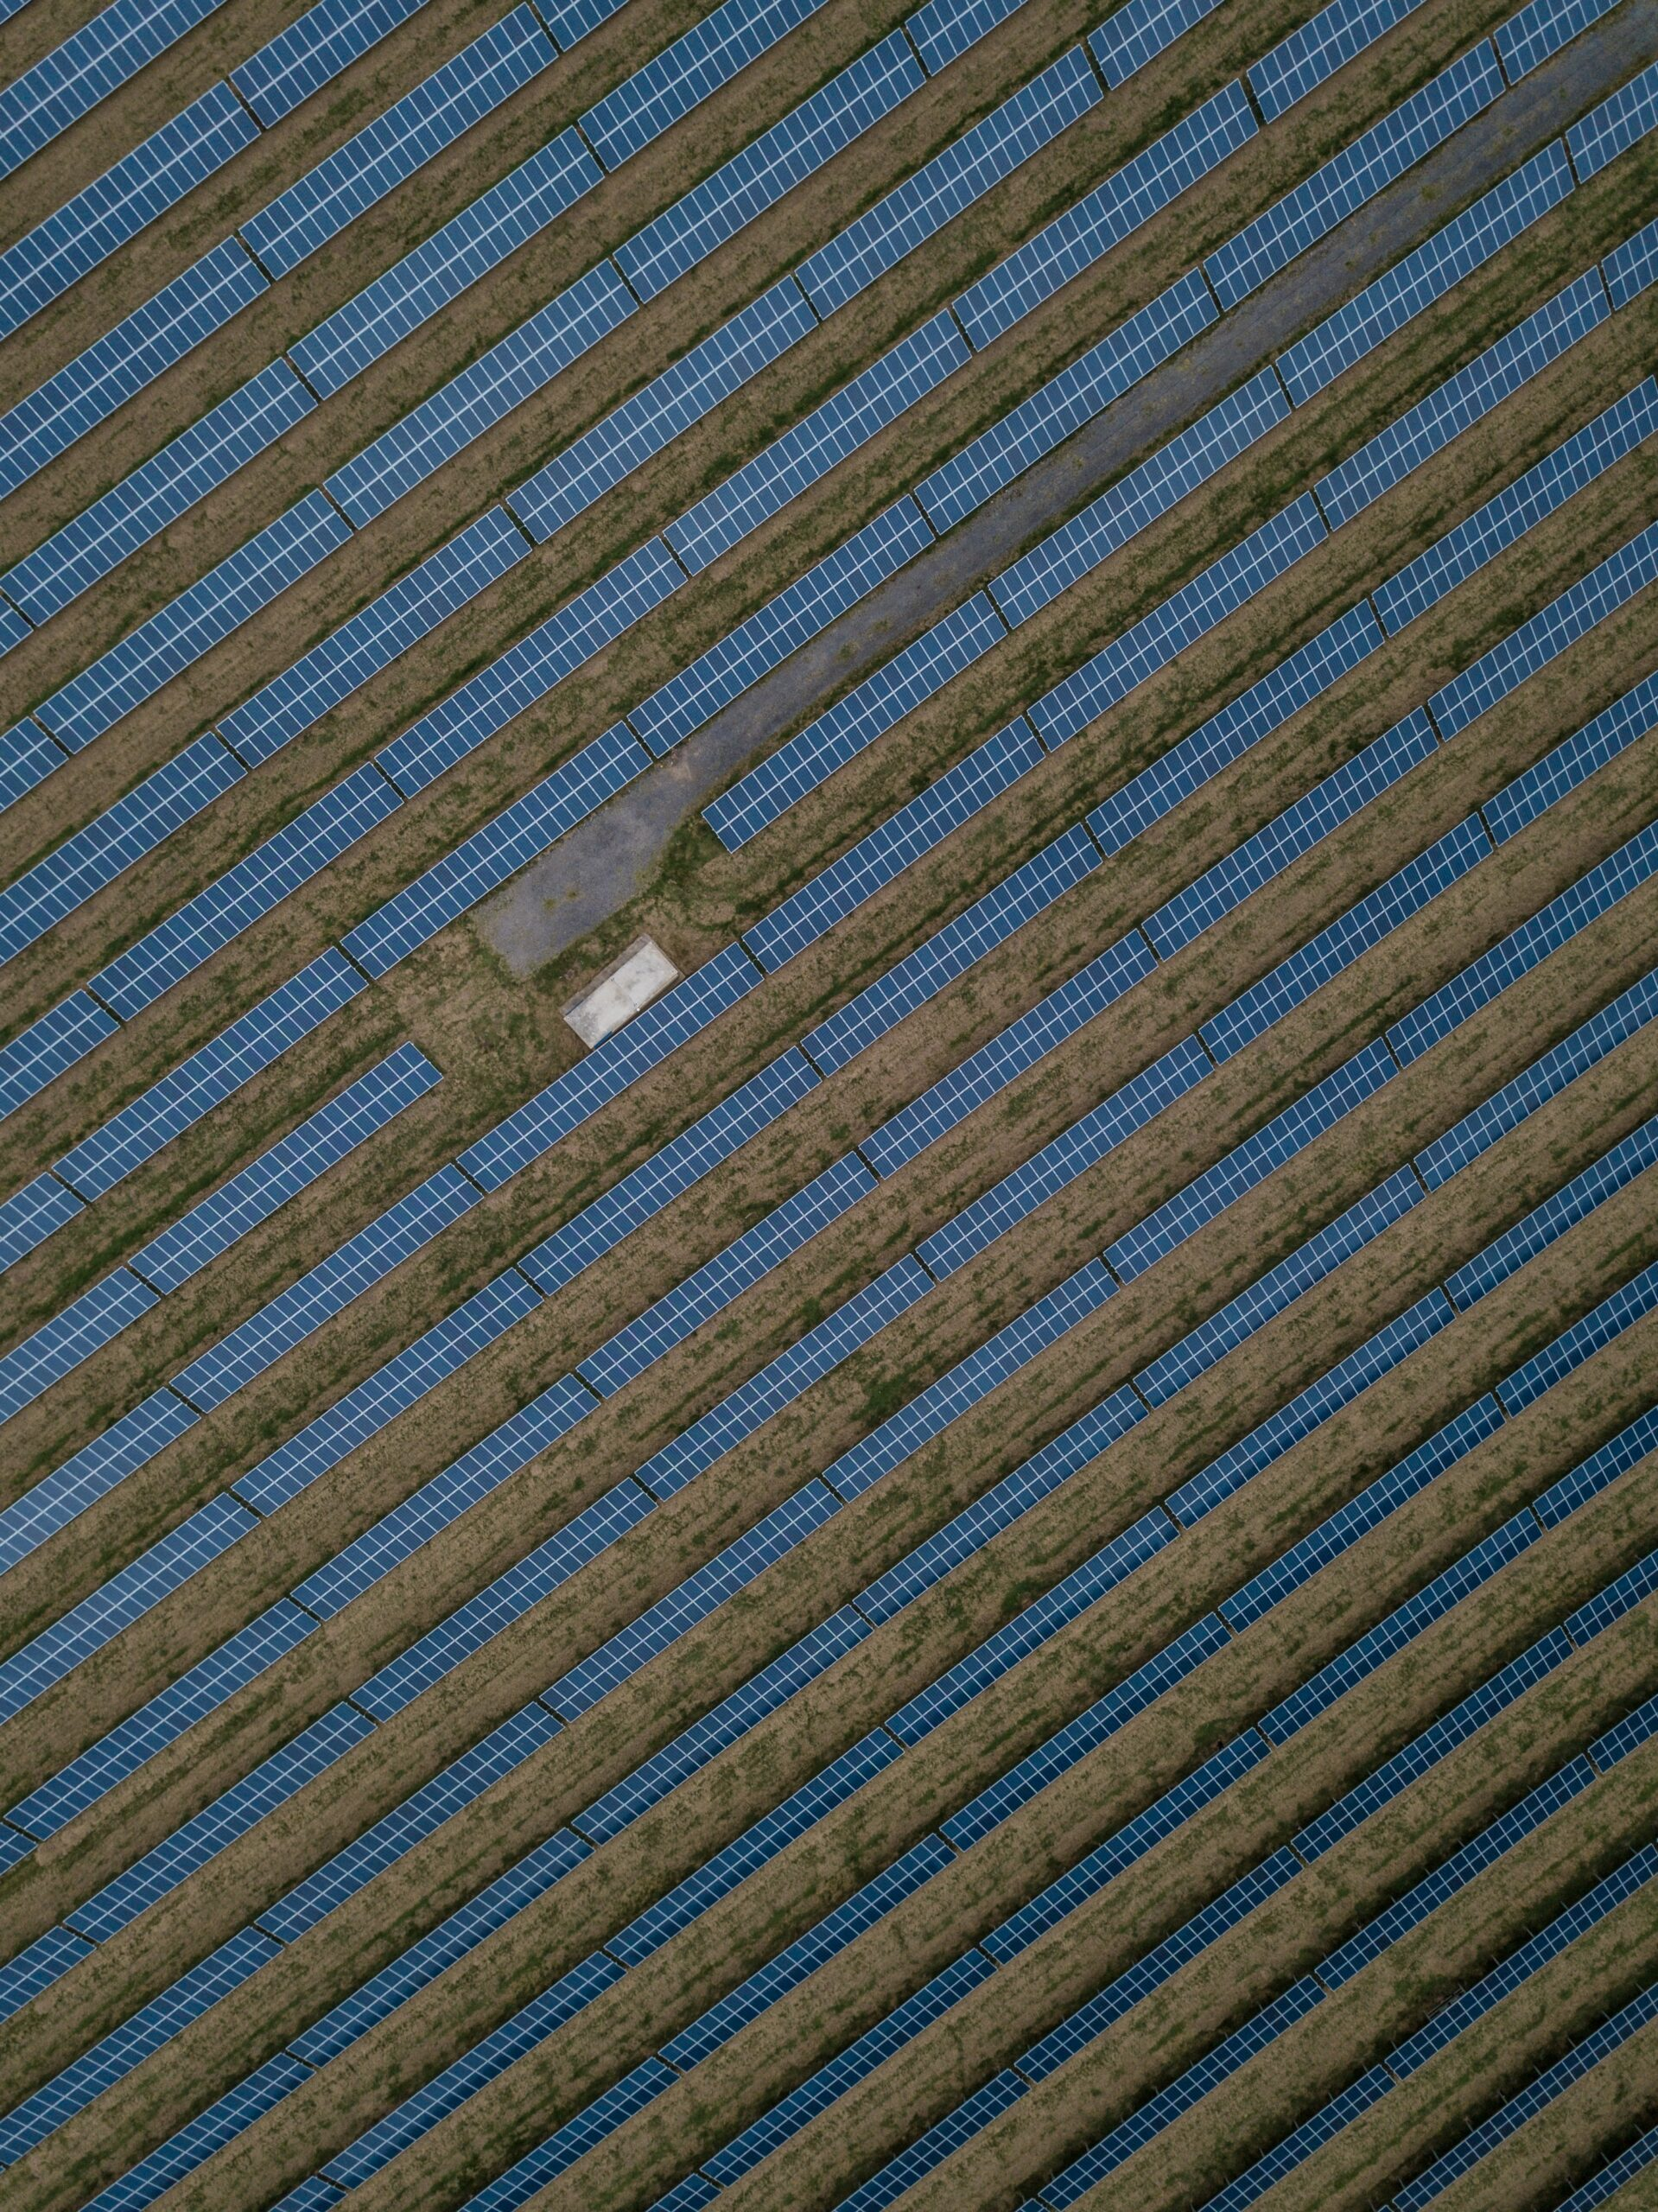 Sun Cable, solar park in Australia visible from space